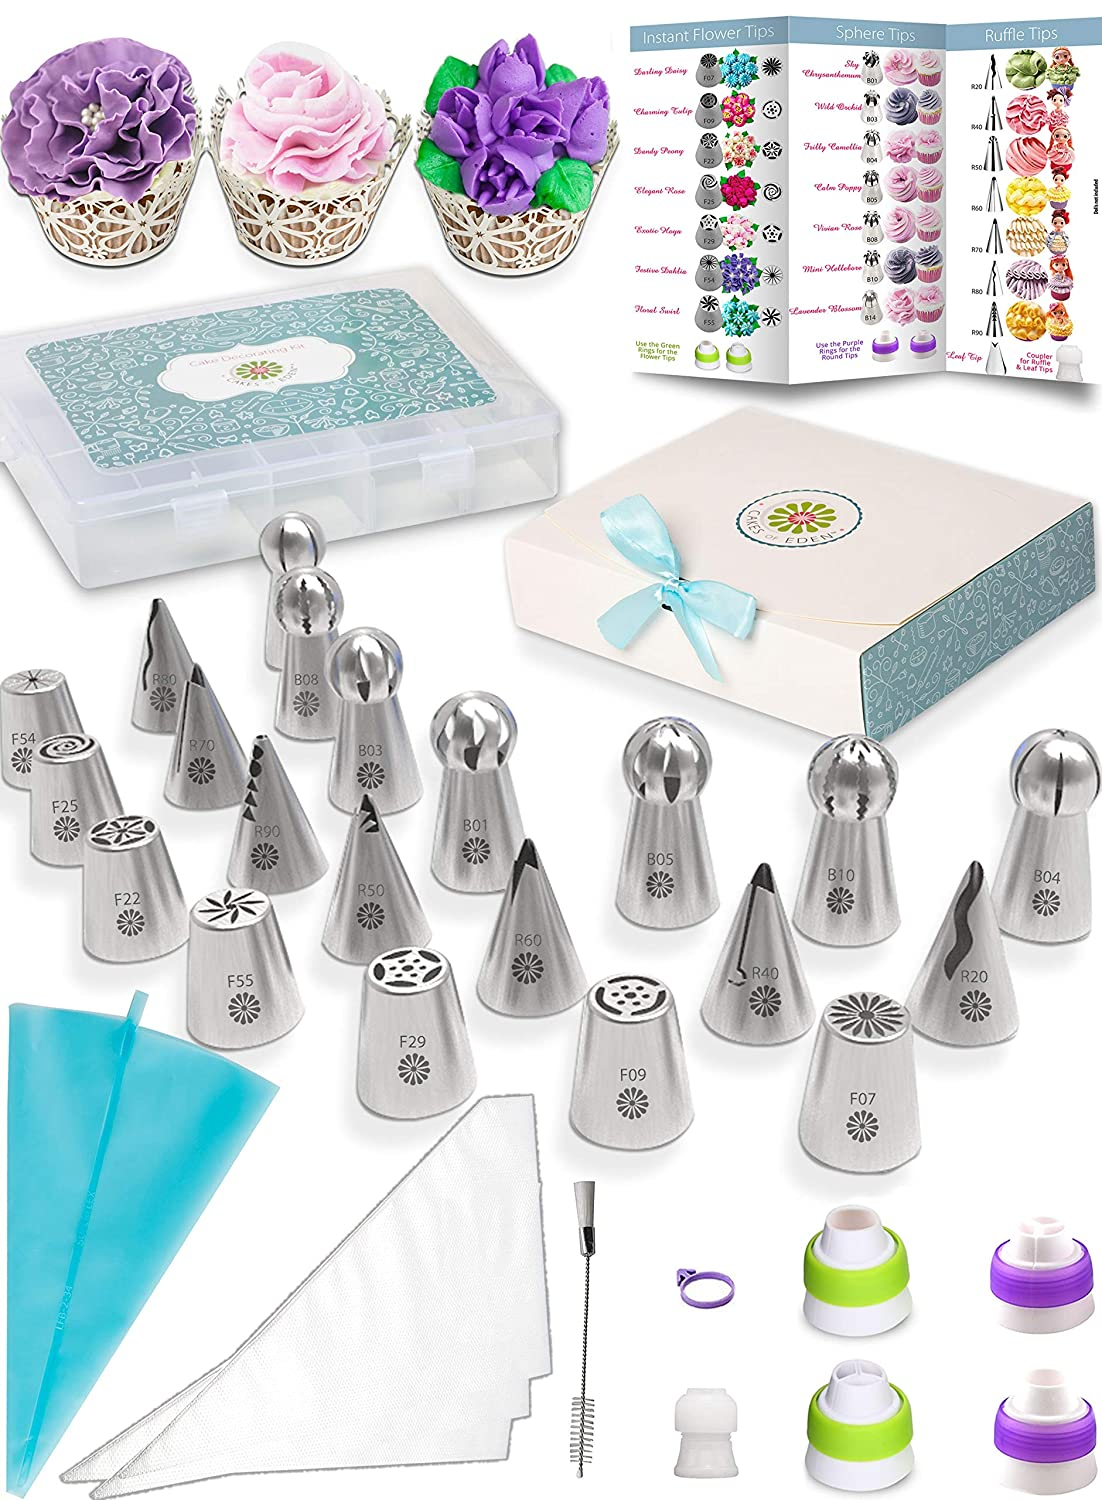 Russian Piping Tips Variety Set - 3 Types of Icing Nozzles Endless Combos | 69pc Kit Cake Decorating Supplies | Numbered Quick Start User Guide | Flower Shaped Frosting | Storage Case + Accessories Cakes of Eden